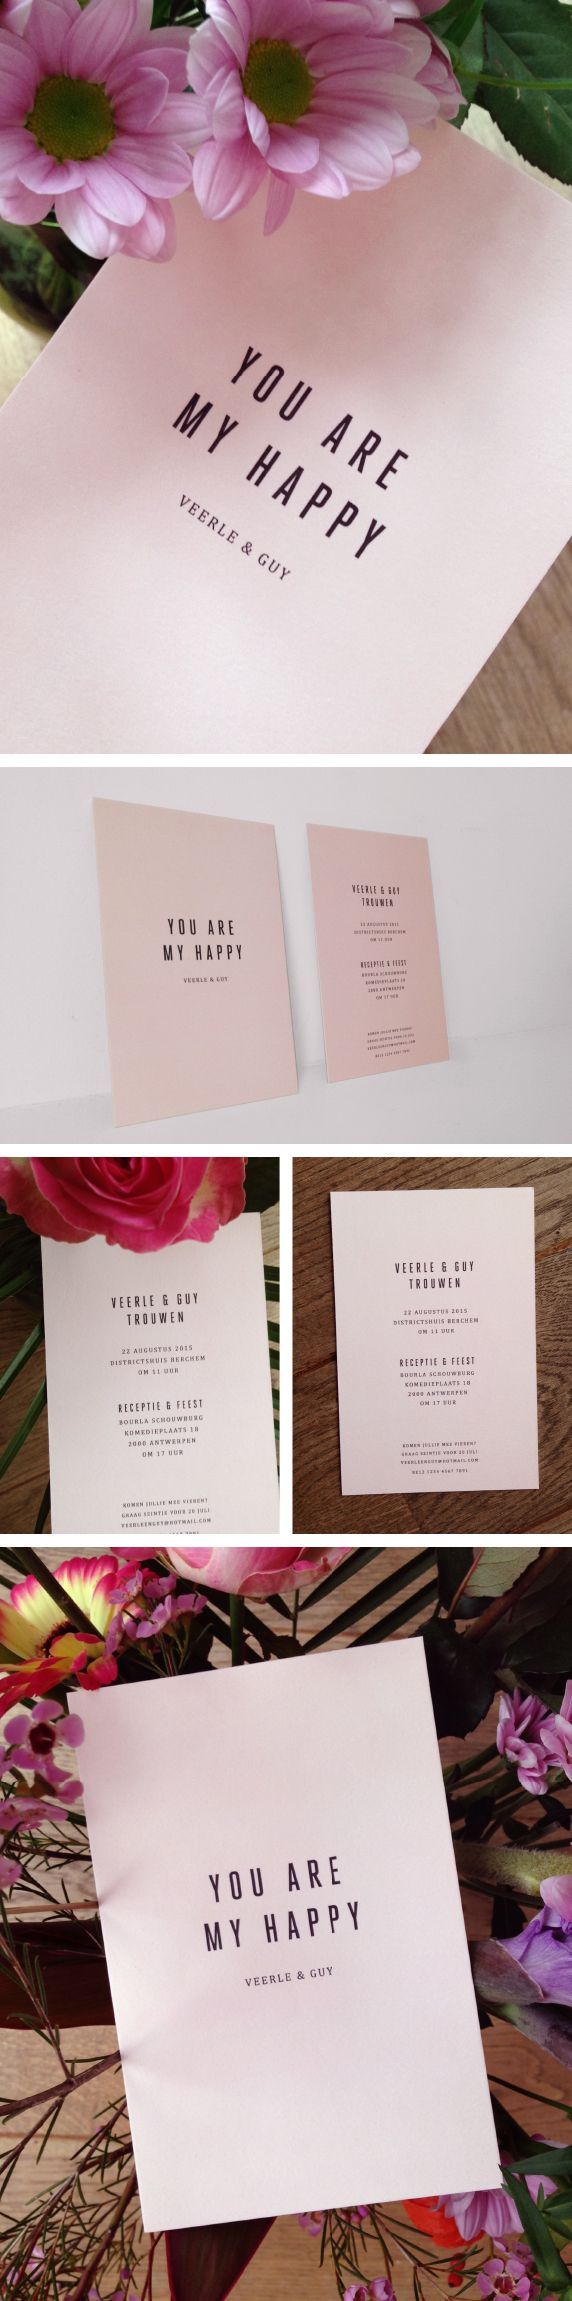 wedding, invitation, pink, you are my happy, love, typo, strak, eenvoud, roos, trouwuitnodiging, minimal, love quote